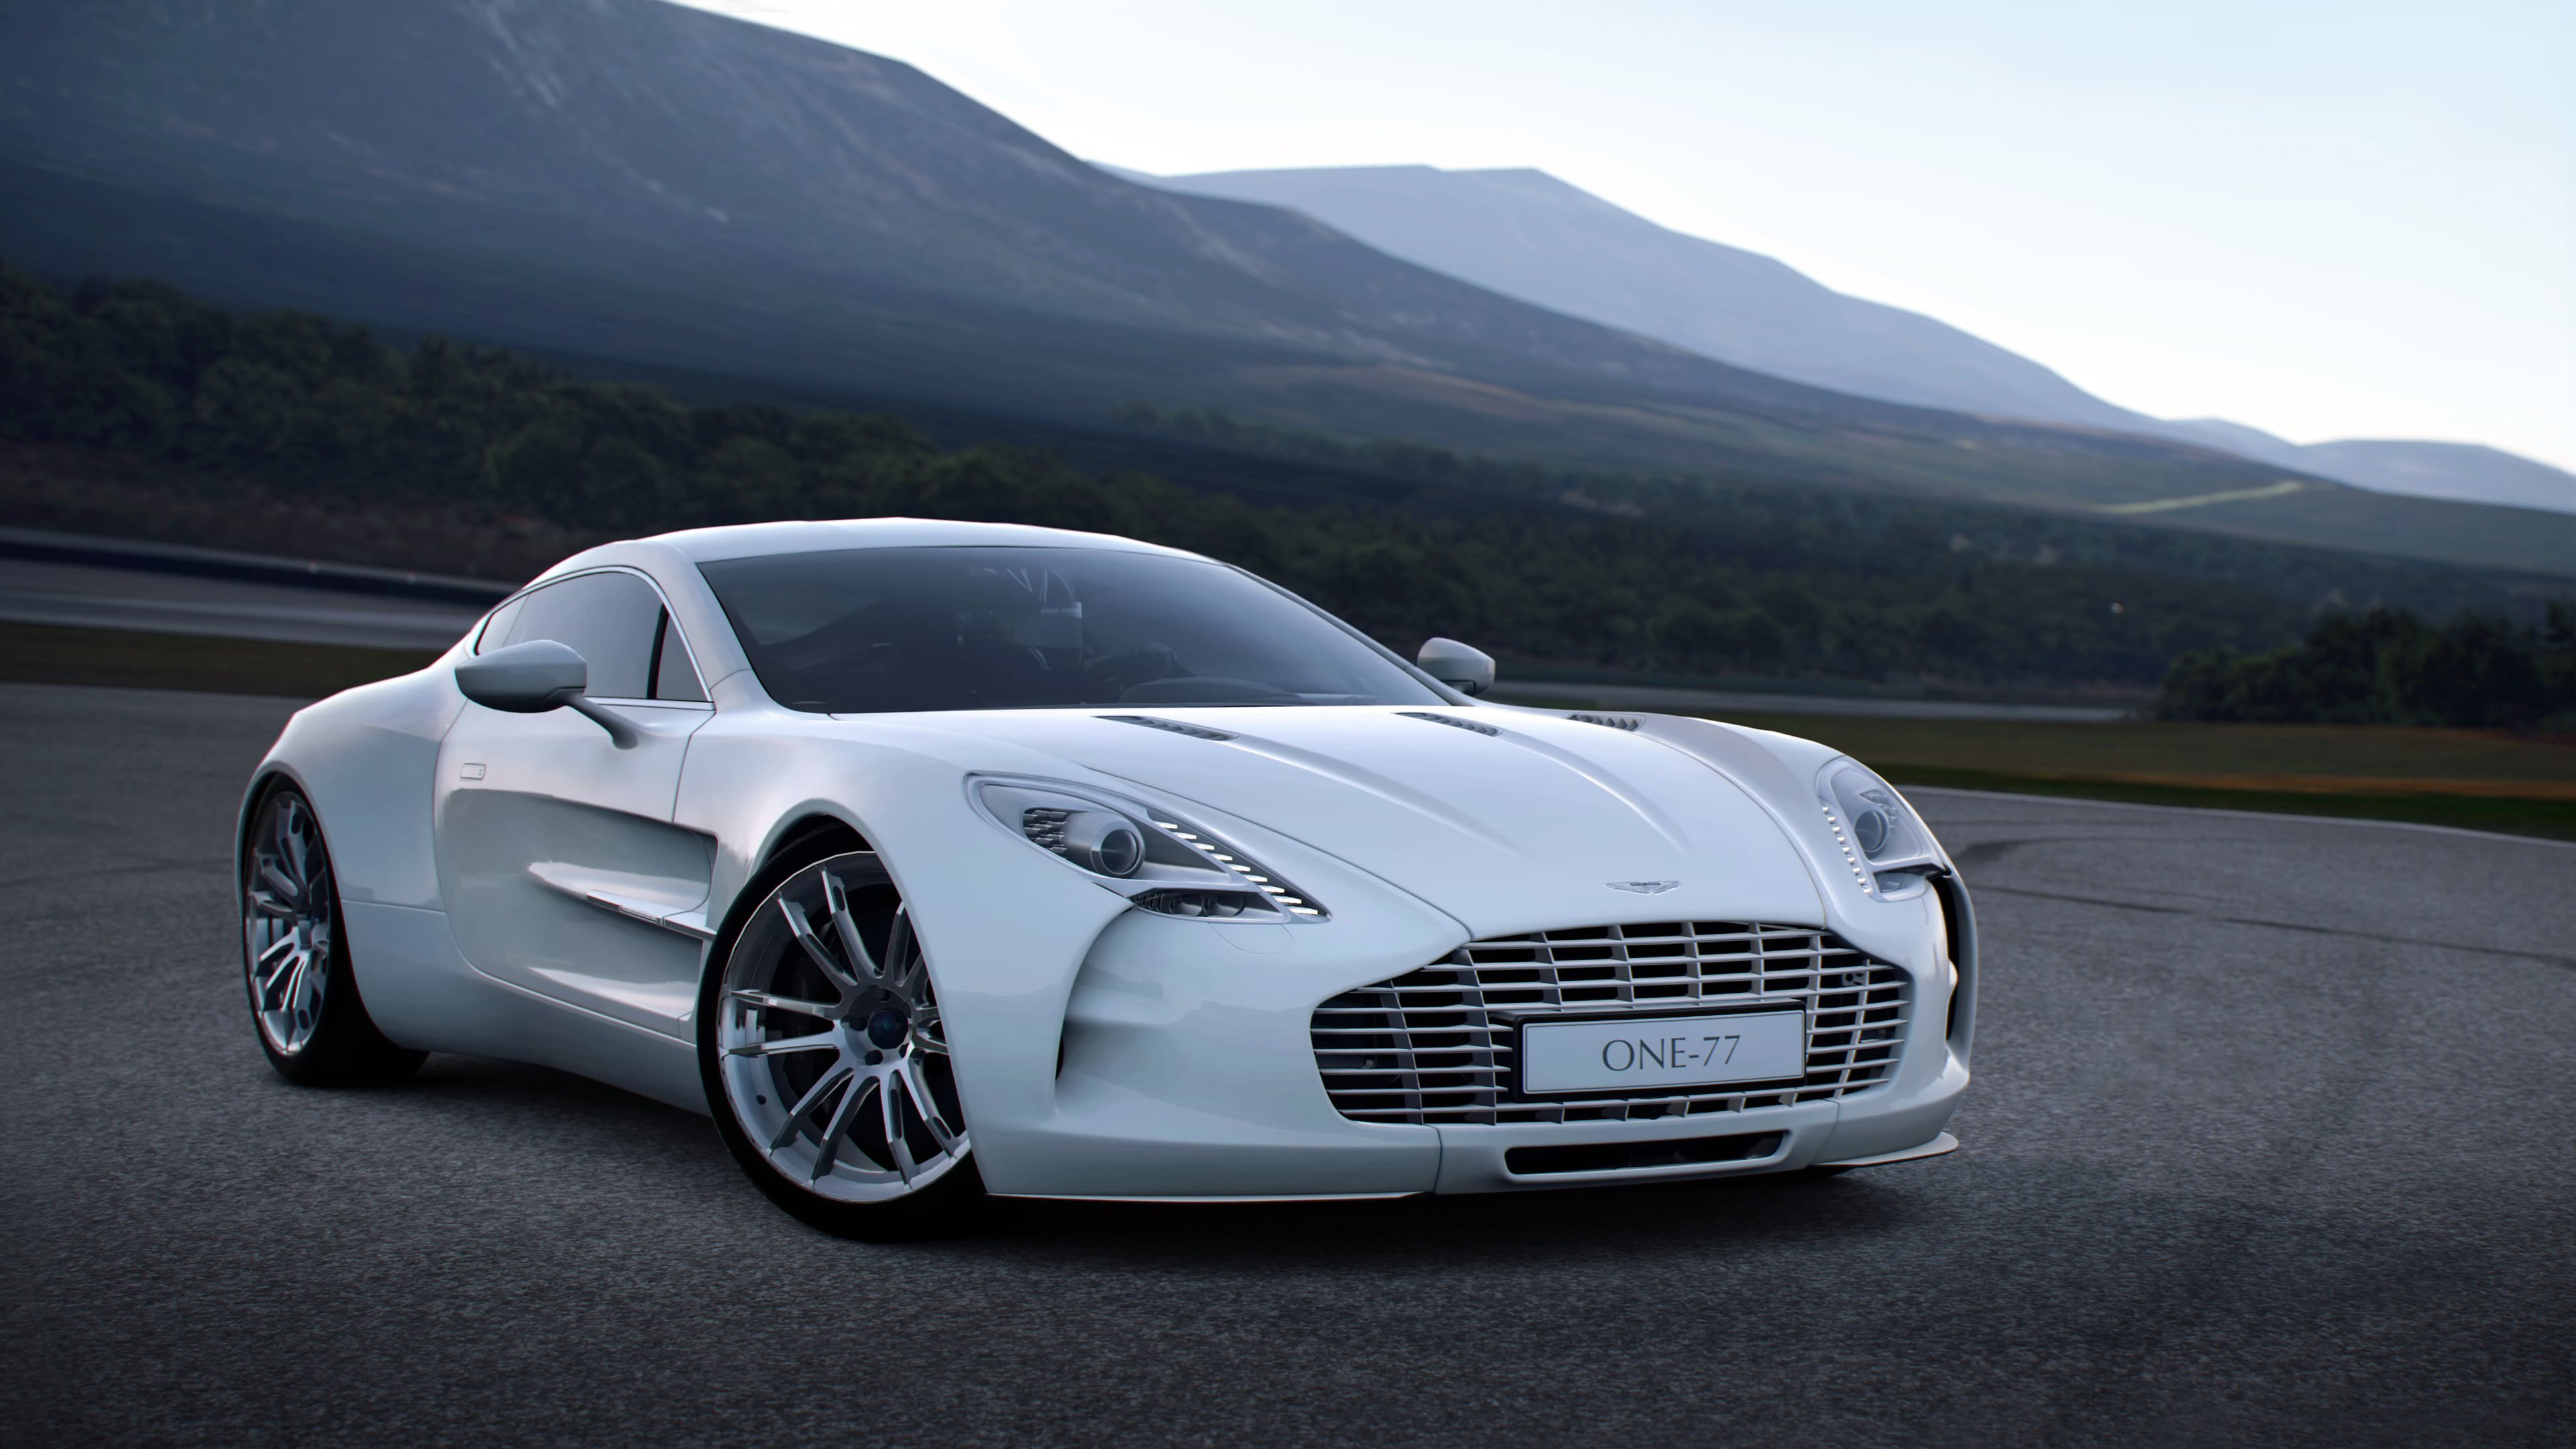 Aston Martin One-77 Wallpapers hd